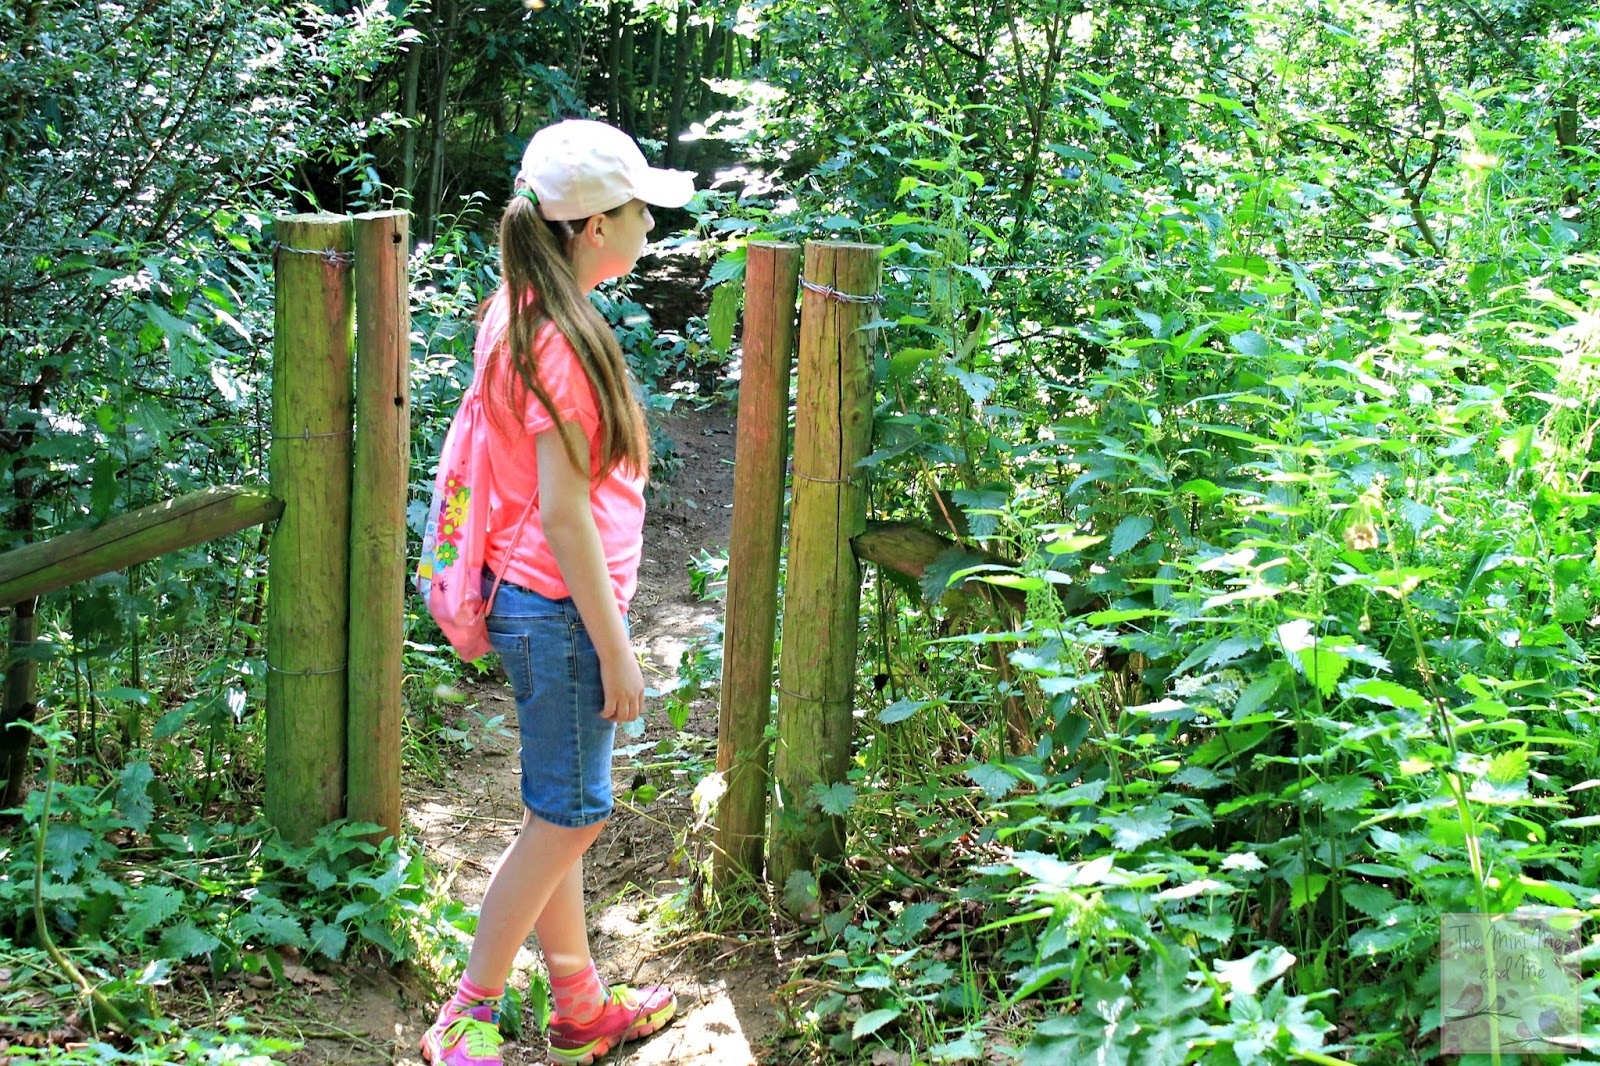 The Mini Mes and Me woodland walk looking for wildlife